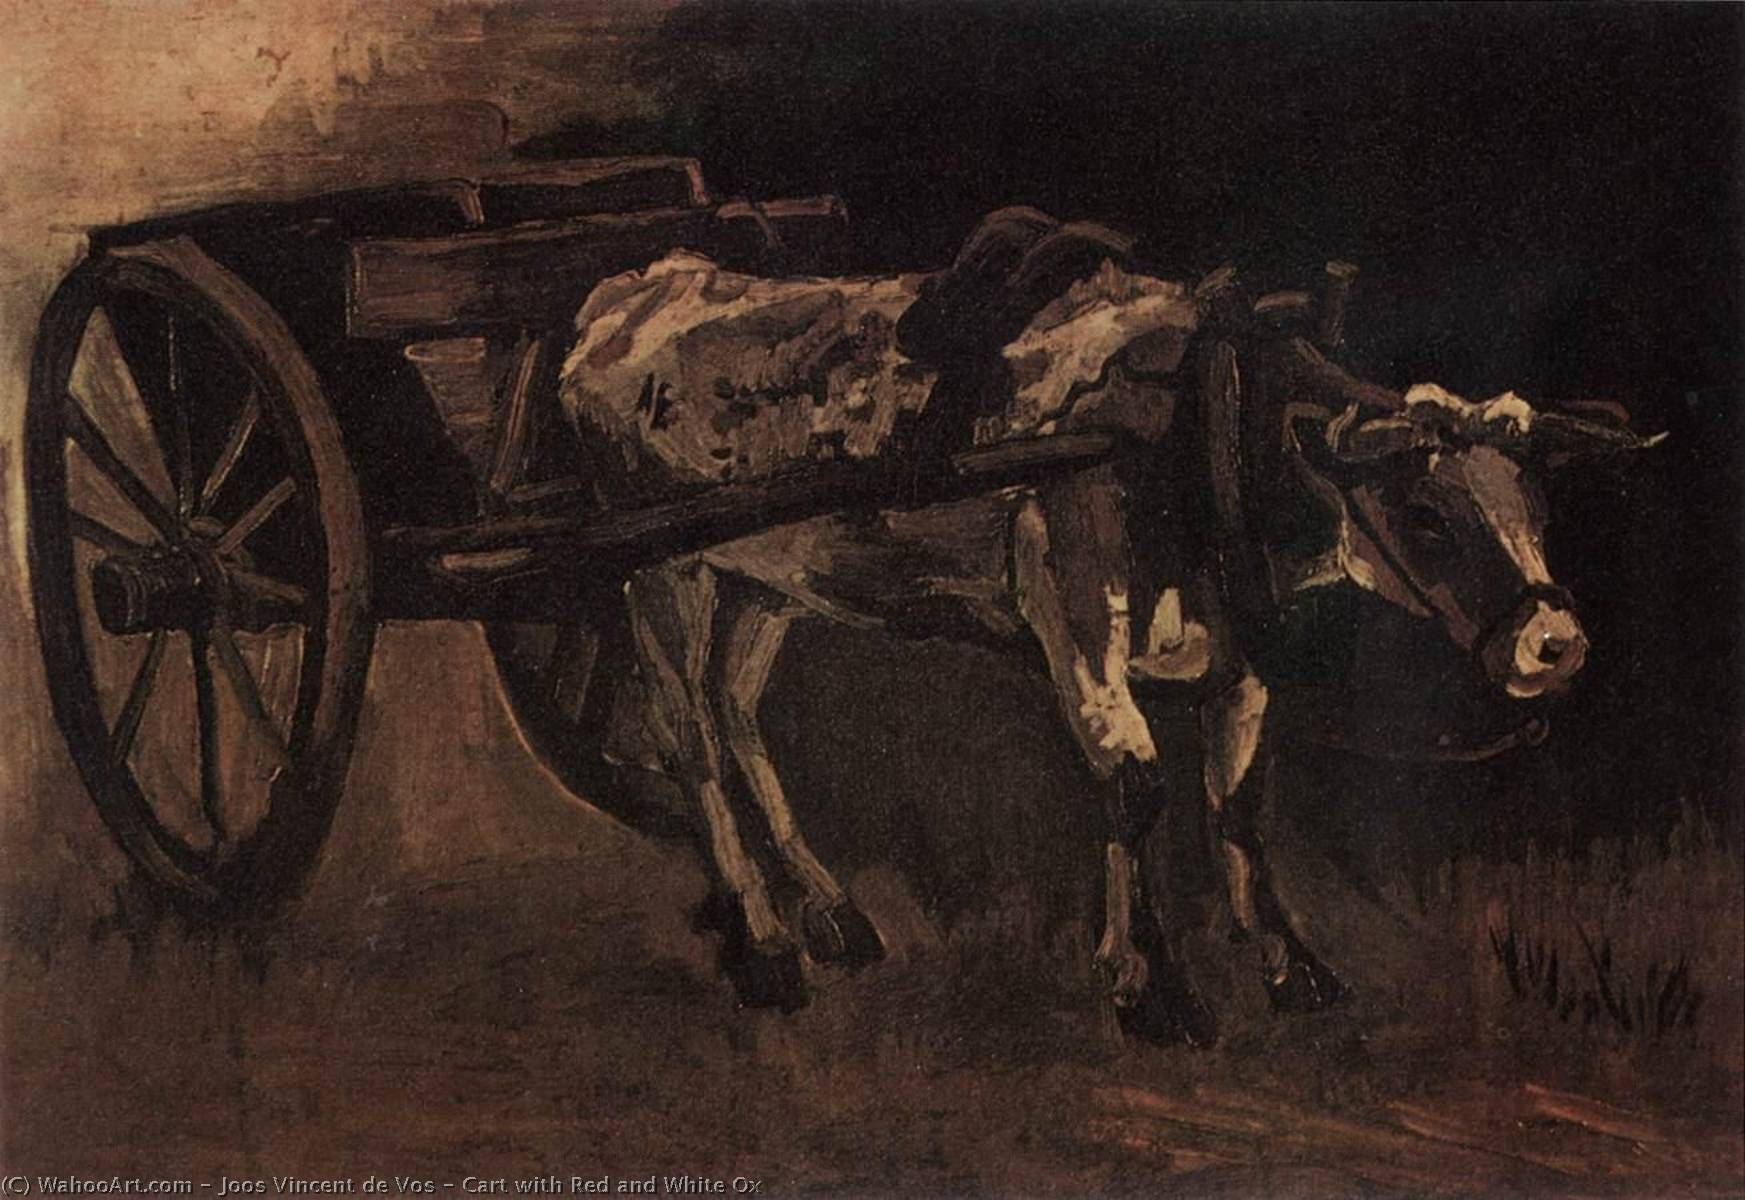 Cart with Red and White Ox, Oil On Canvas by Joos Vincent De Vos (1853-1890, Netherlands)